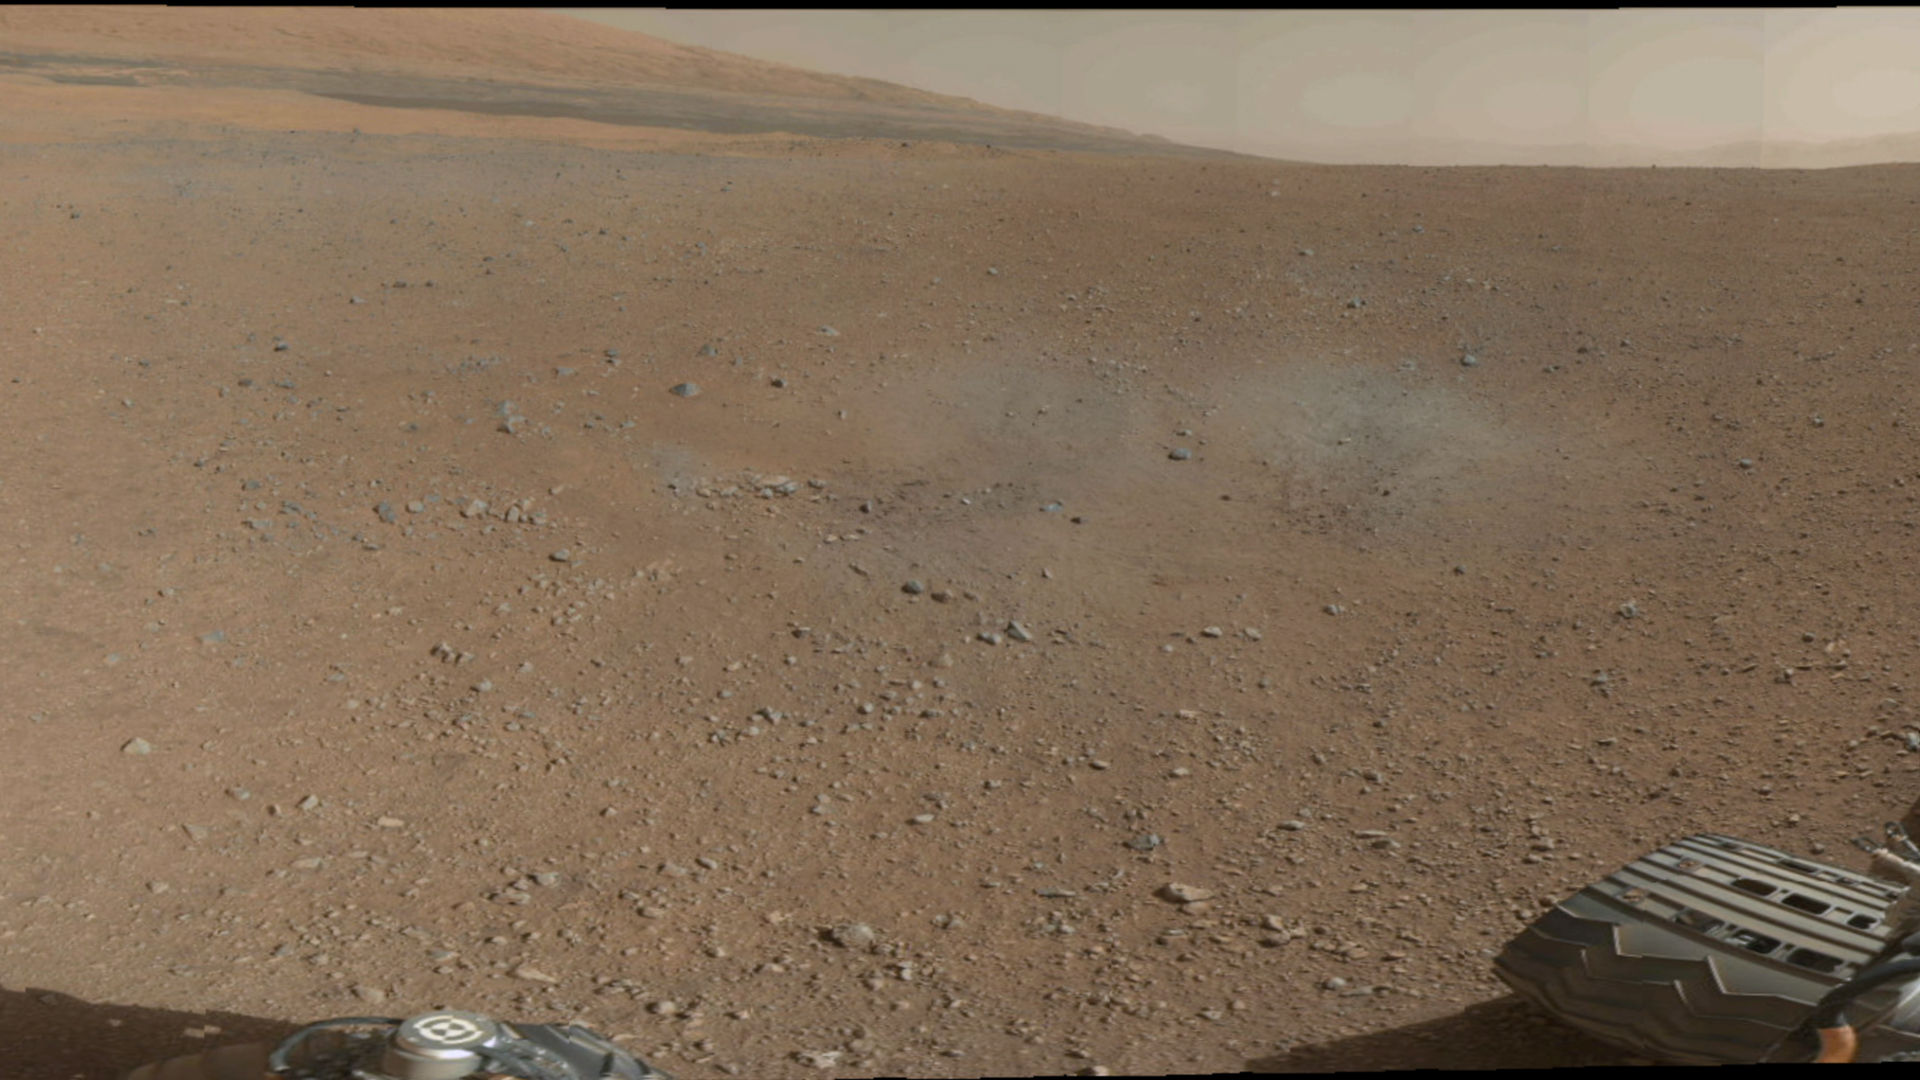 Curiosity does color, too, showing off the Red Planet's surface.